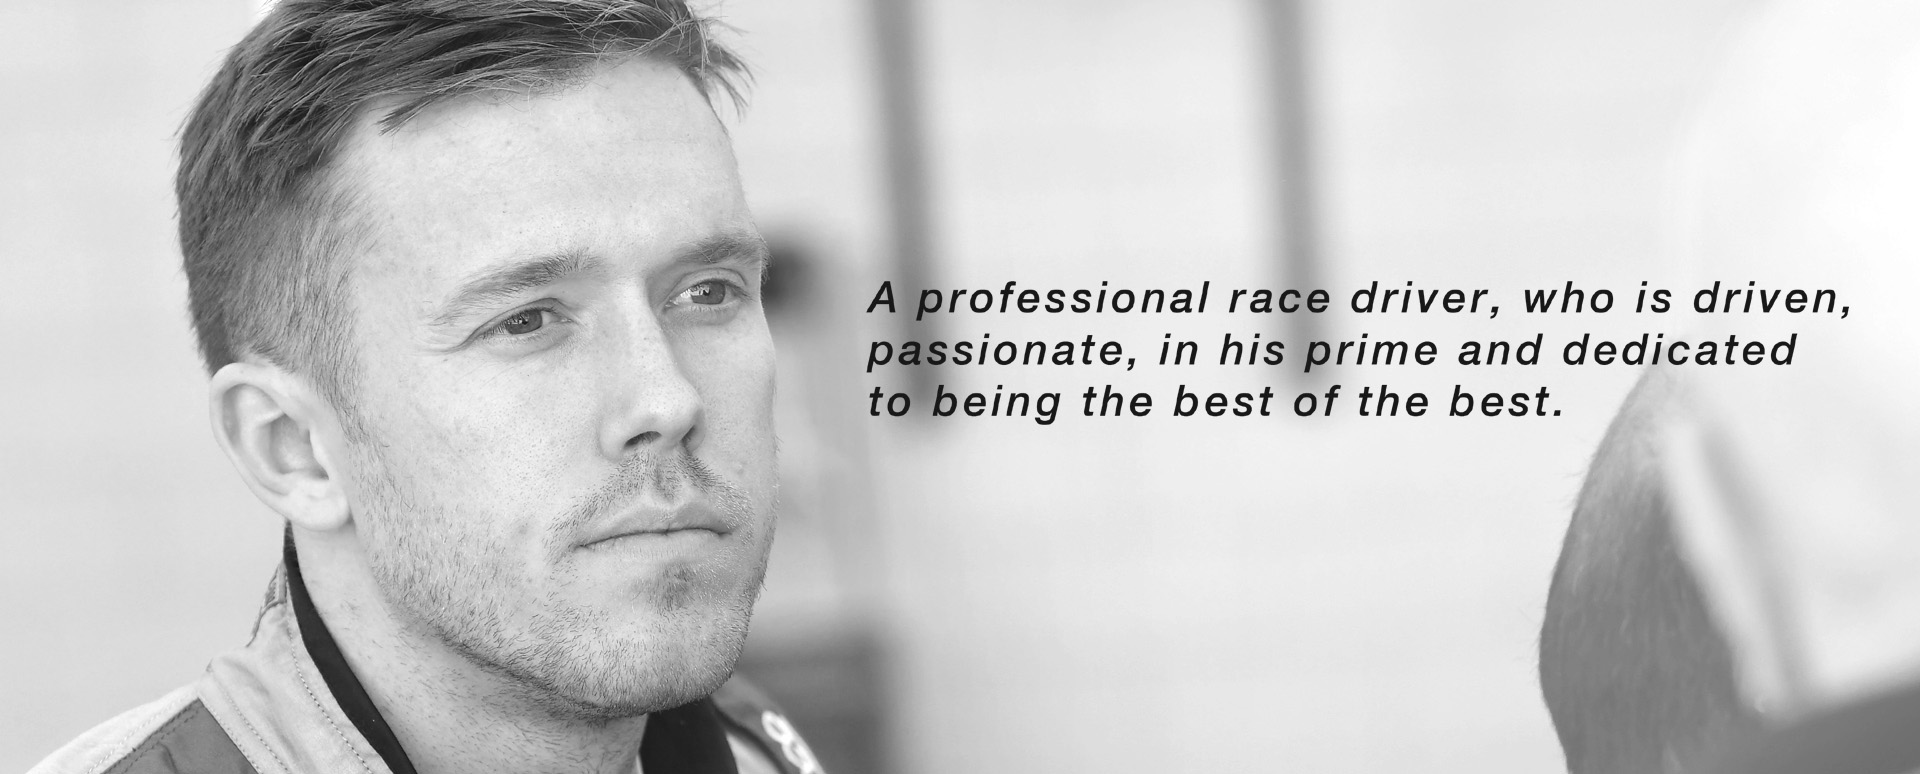 A professional race driver, who is driven, passionate, in his prime and dedicated to being the best of the best